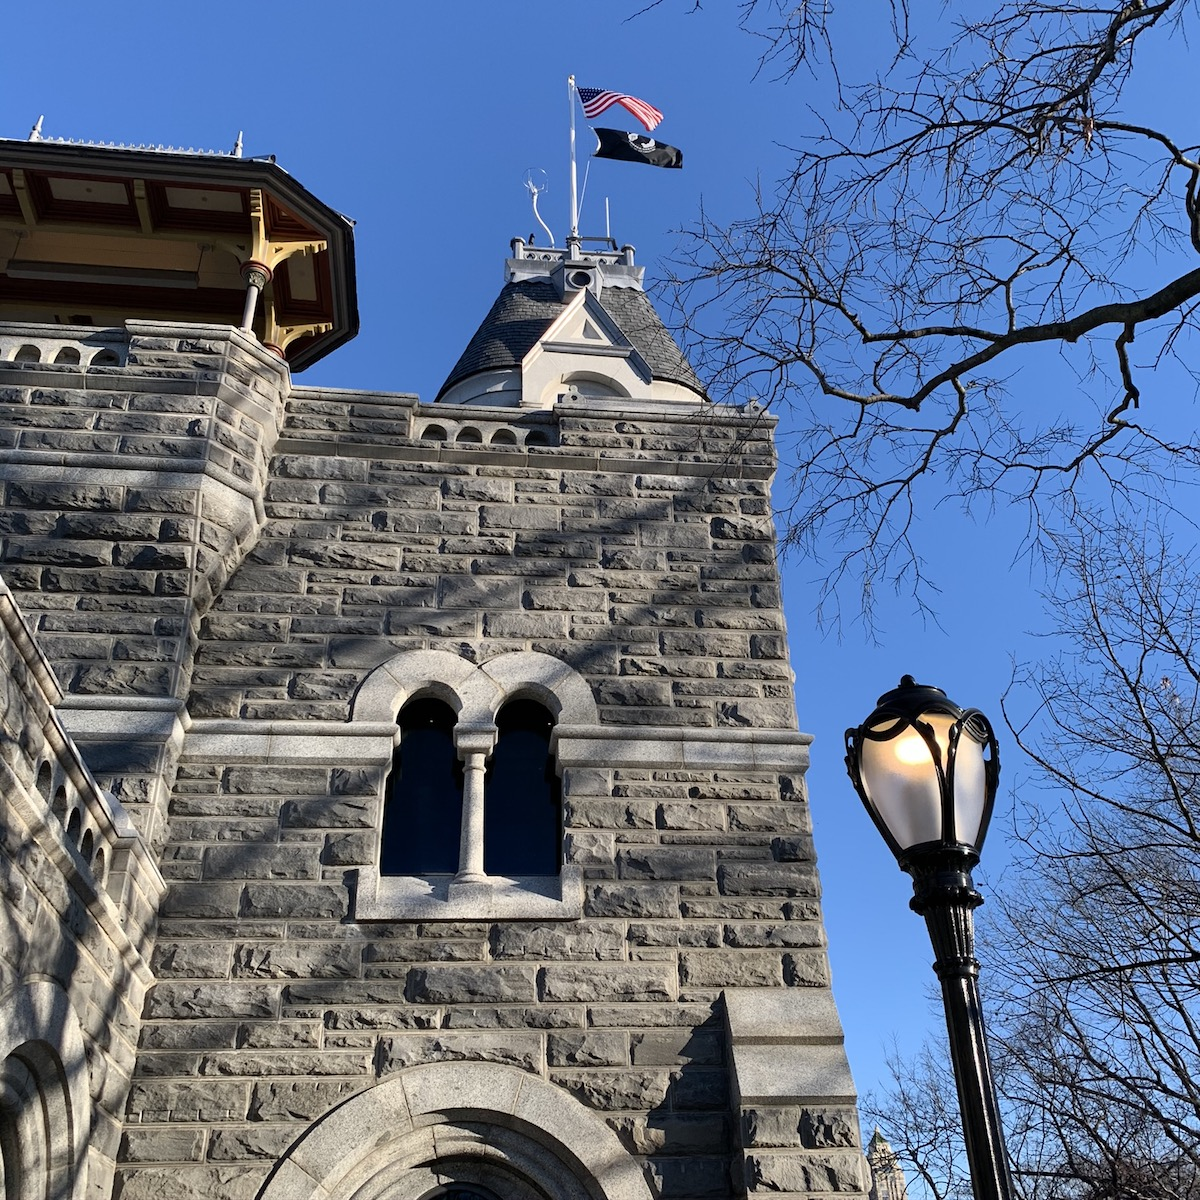 Recent post! A walk to Belvedere Castle